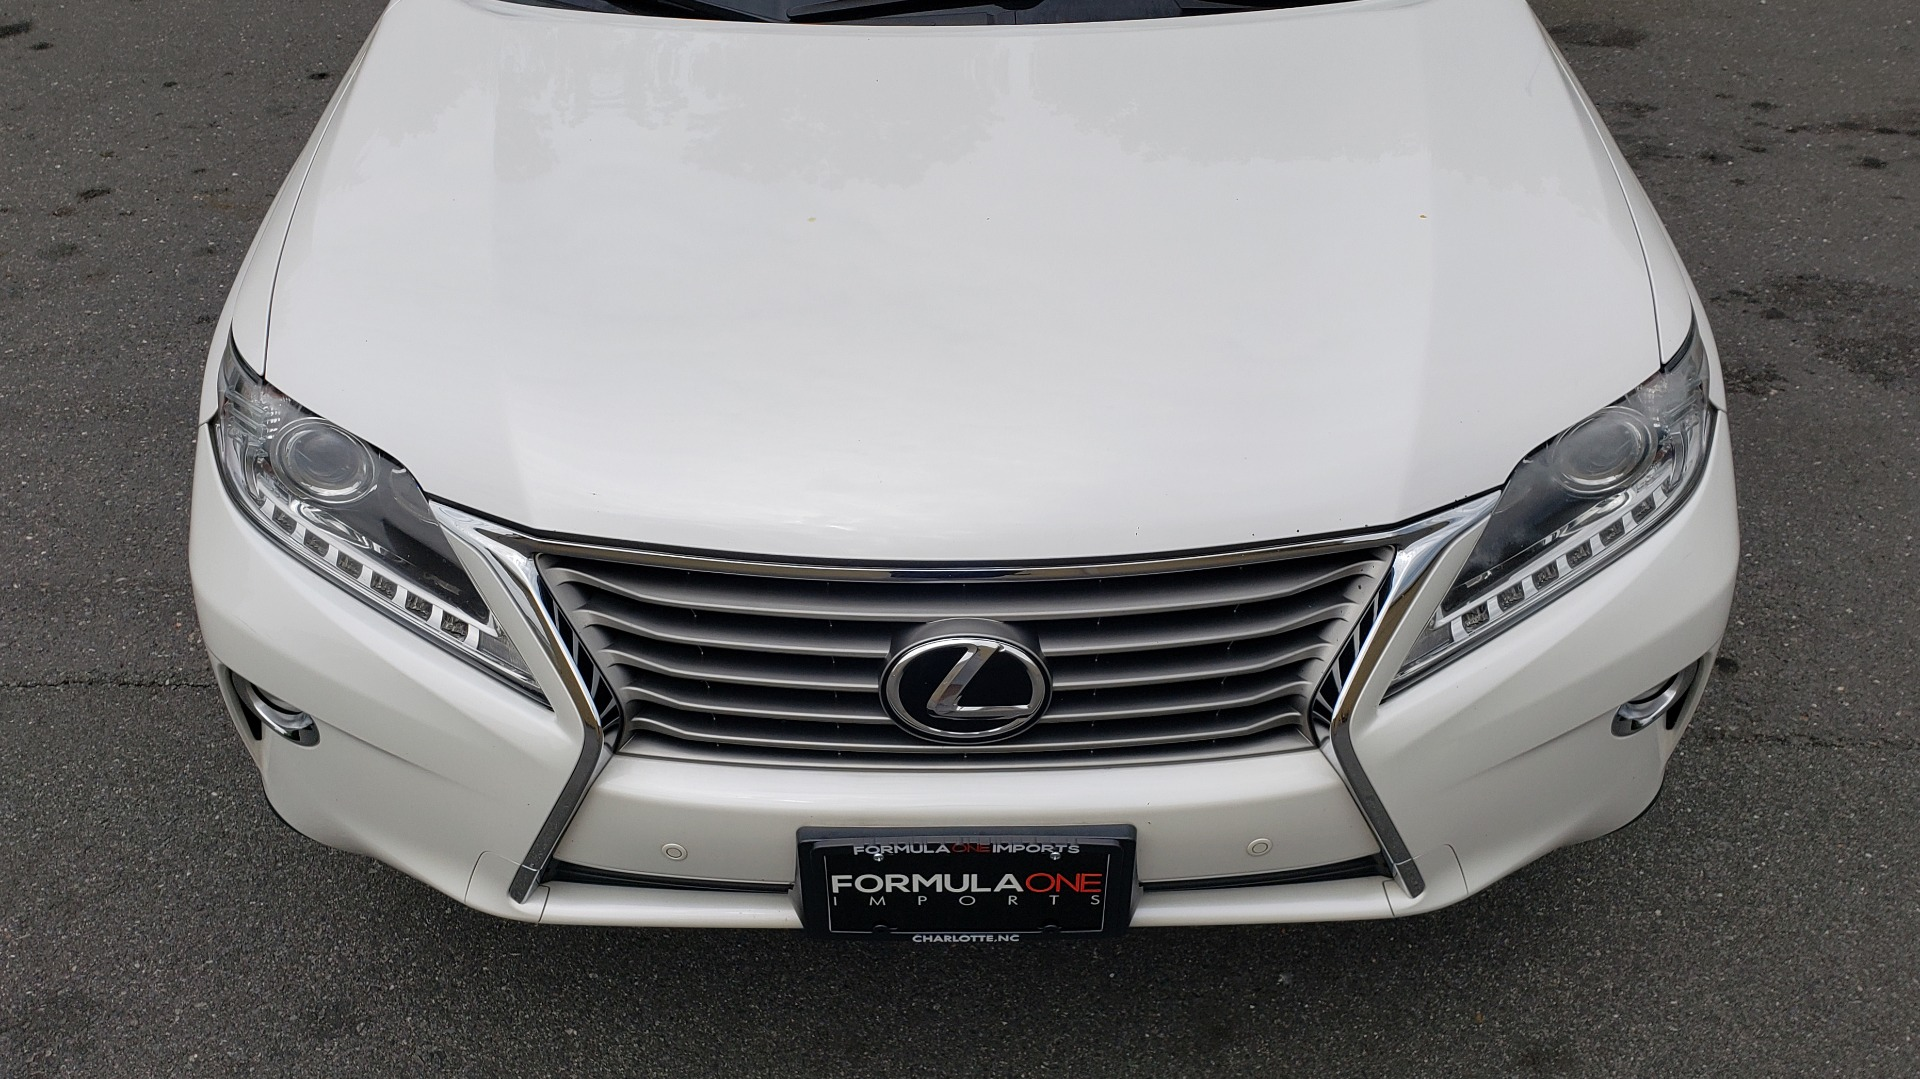 Used 2013 Lexus RX 350 PREMIUM PKG / SUNROOF / BSM / PARK ASST / REARVIEW for sale Sold at Formula Imports in Charlotte NC 28227 23